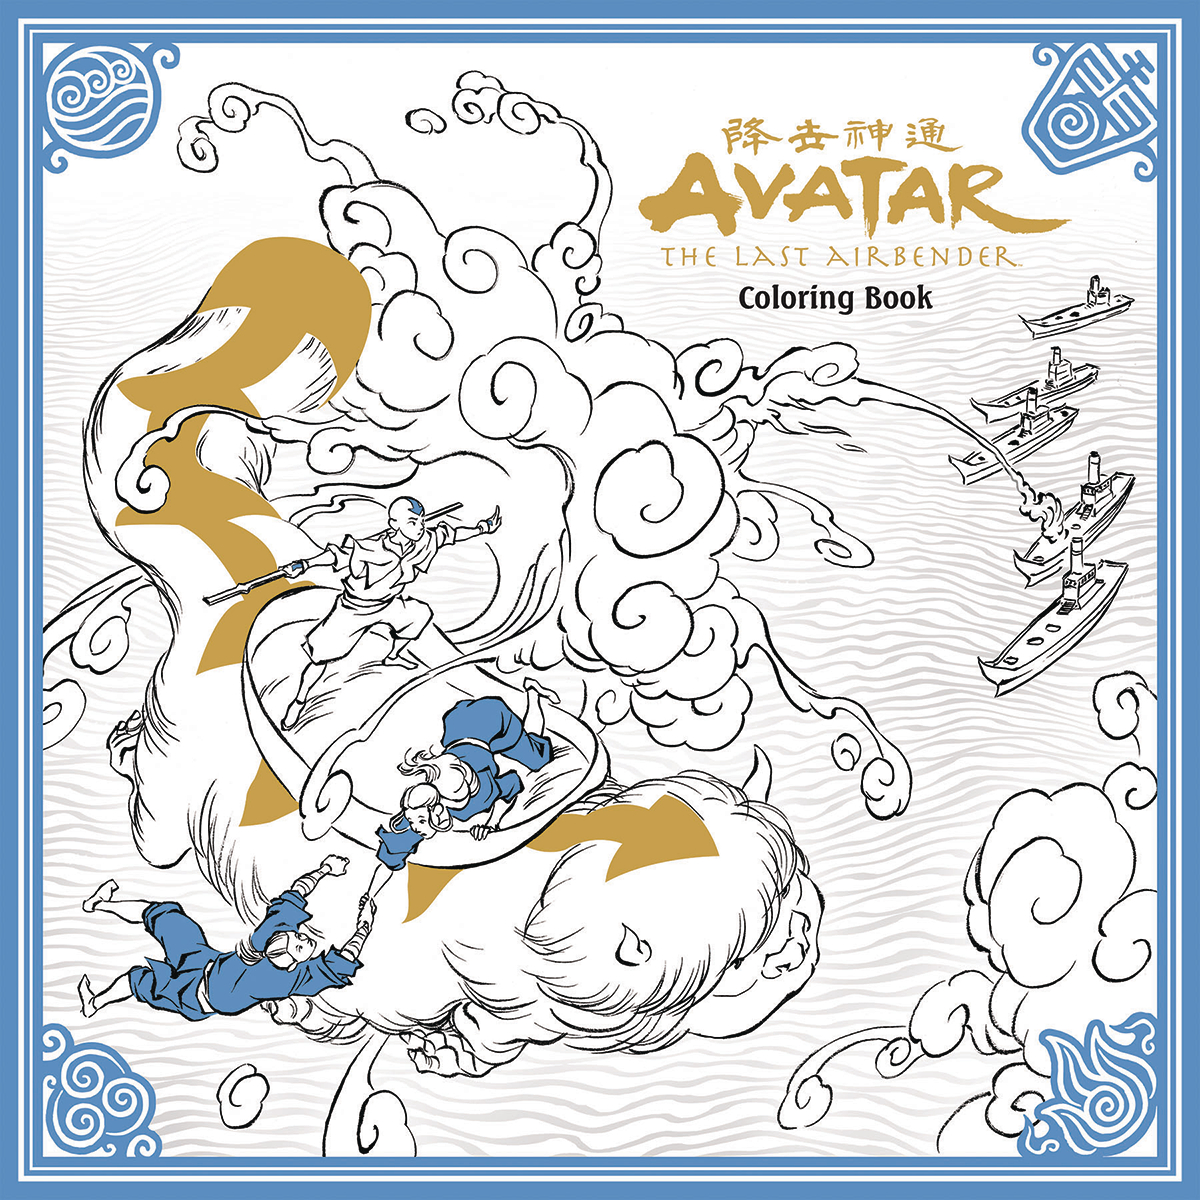 AVATAR LAST AIRBENDER ADULT COLORING BOOK TP (O/A)